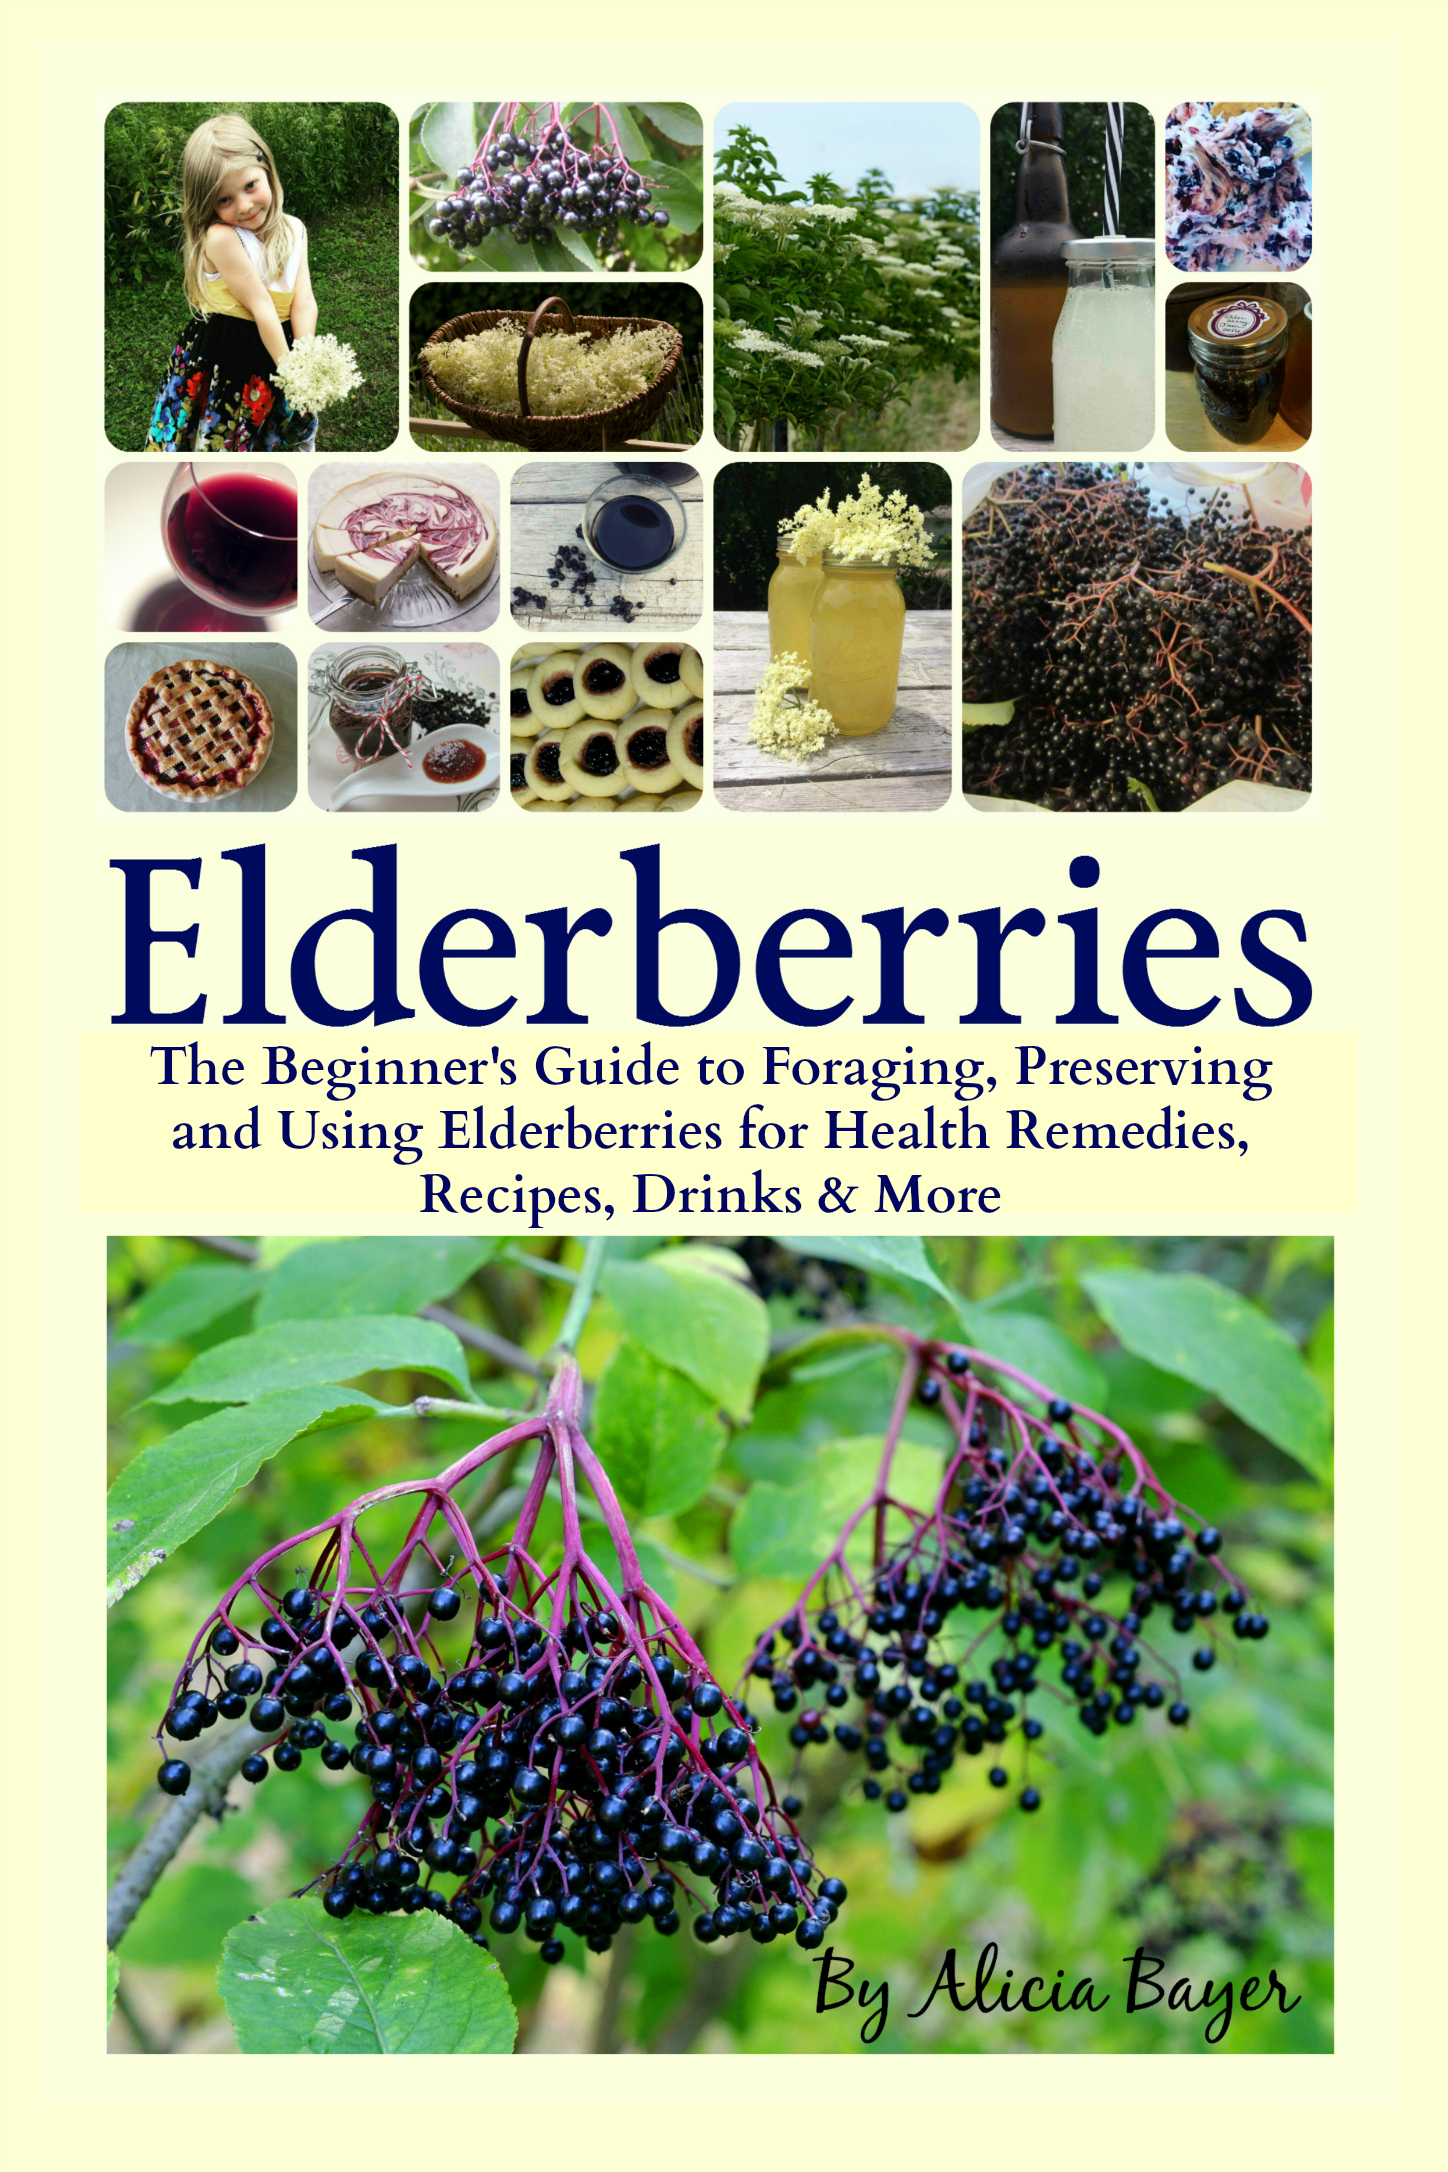 Elderberries grow wild all over the United States, Canada, Europe and beyond, yet most people don't even realize they're there. Now you can learn how to easily find wild elderberries, forage them and grow your own to make medicinal remedies like anti-flu syrup and elderberry oxymel, delicious baked goods like elderberry meringue pie and elderberry thumbprint cookies, elderflower recipes like elderflower fritters and elderflower soda, alcoholic recipes like elderberry wine and elderberry hard lemonade, and lots more. Elderberries and elderflowers are among the most perfect wild foods. They are useful in all sorts of recipes, packed with health benefits that do everything from boost the immune system to cure the flu, and you can even find them for free all over the world -- or grow your own. This comprehensive guide will teach you: The incredible history of elderberries and elder flowers Health studies and traditional medicinal uses The effects of heating and freezing on the medicinal properties of elderberries The most efficient way to get every bit of the anti-flu benefits from elderberries (Hint: it's not elderberry syrup!) How to easily find elderberries, with full-color ID photos and maps of elderberry ranges in the United States and Canada (though you'll also find them elsewhere all throughout the world) How to grow your own elder shrubs from cuttings or wild transplants How to preserve elderberries by freezing, drying, canning and more How to ID elders and how to tell them from so-called poisonous look-alikes Elderflower recipes for teas, pancakes, syrups and more Elderberry recipes for jams, tinctures, oxymels, popsicles, pies, muffins and more Instructions for homemade spirits like elderflower wine, elderberry mead, elderflower-blueberry smashes and elderflower liqueur ice cream floats -- just to name a few! And much more With over 60 recipes for health remedies, baked goods, spirits, jellies and more! The amazing health benefits of elderberries are well know